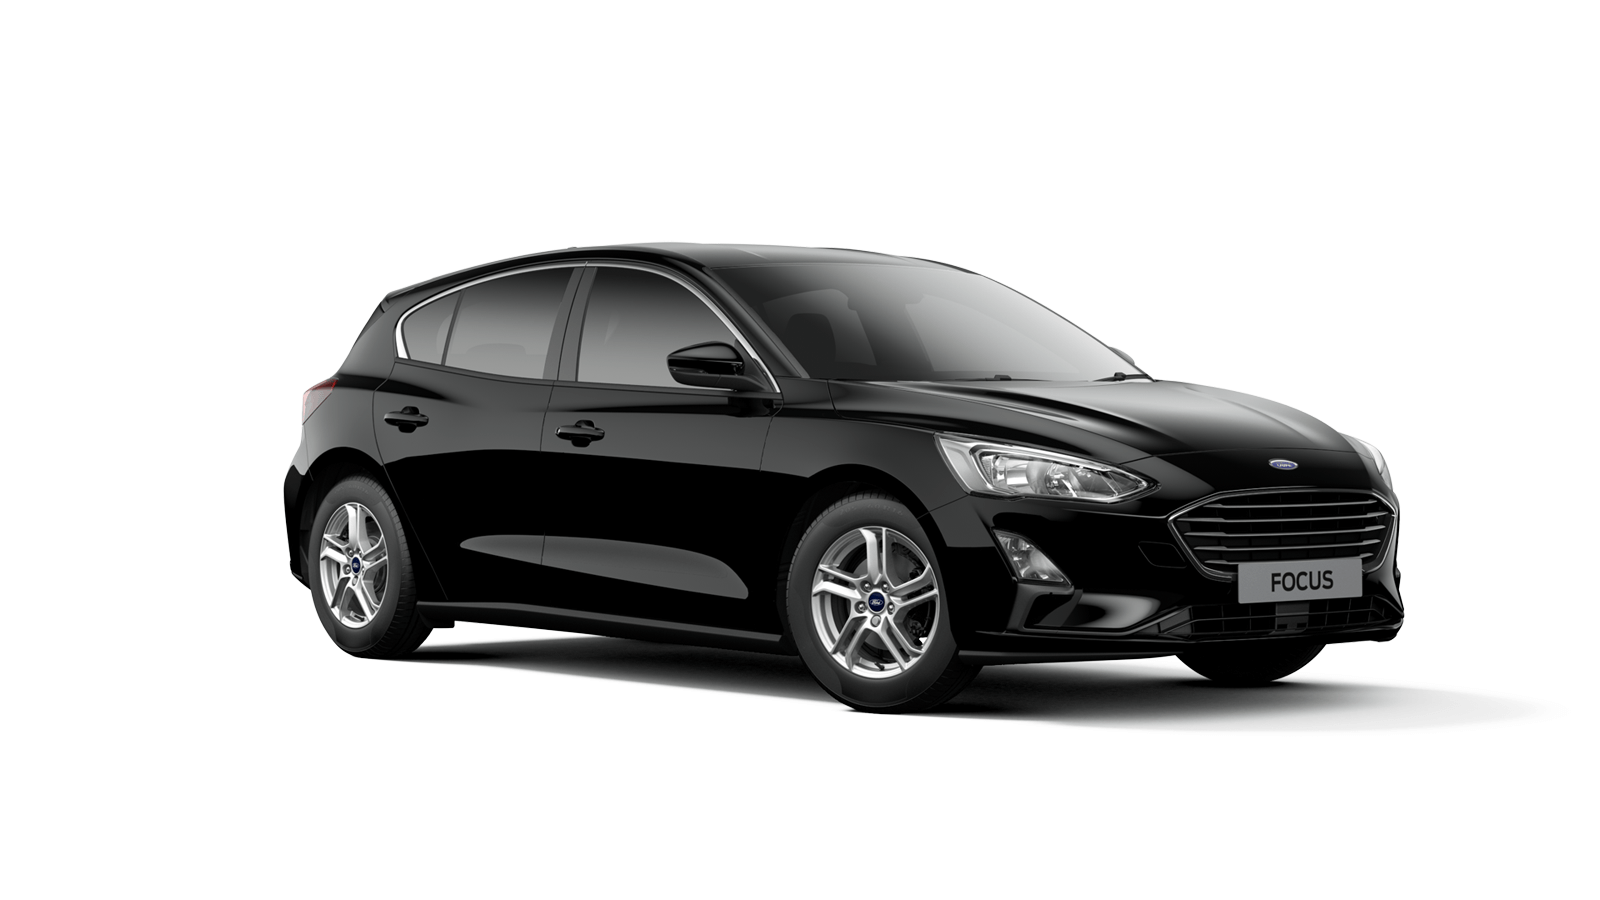 https://www.dealerinternet.co.uk/images/FOCUS%20C346/2019.25/5%20Door/Zetec/SHADOW-BLACK.png